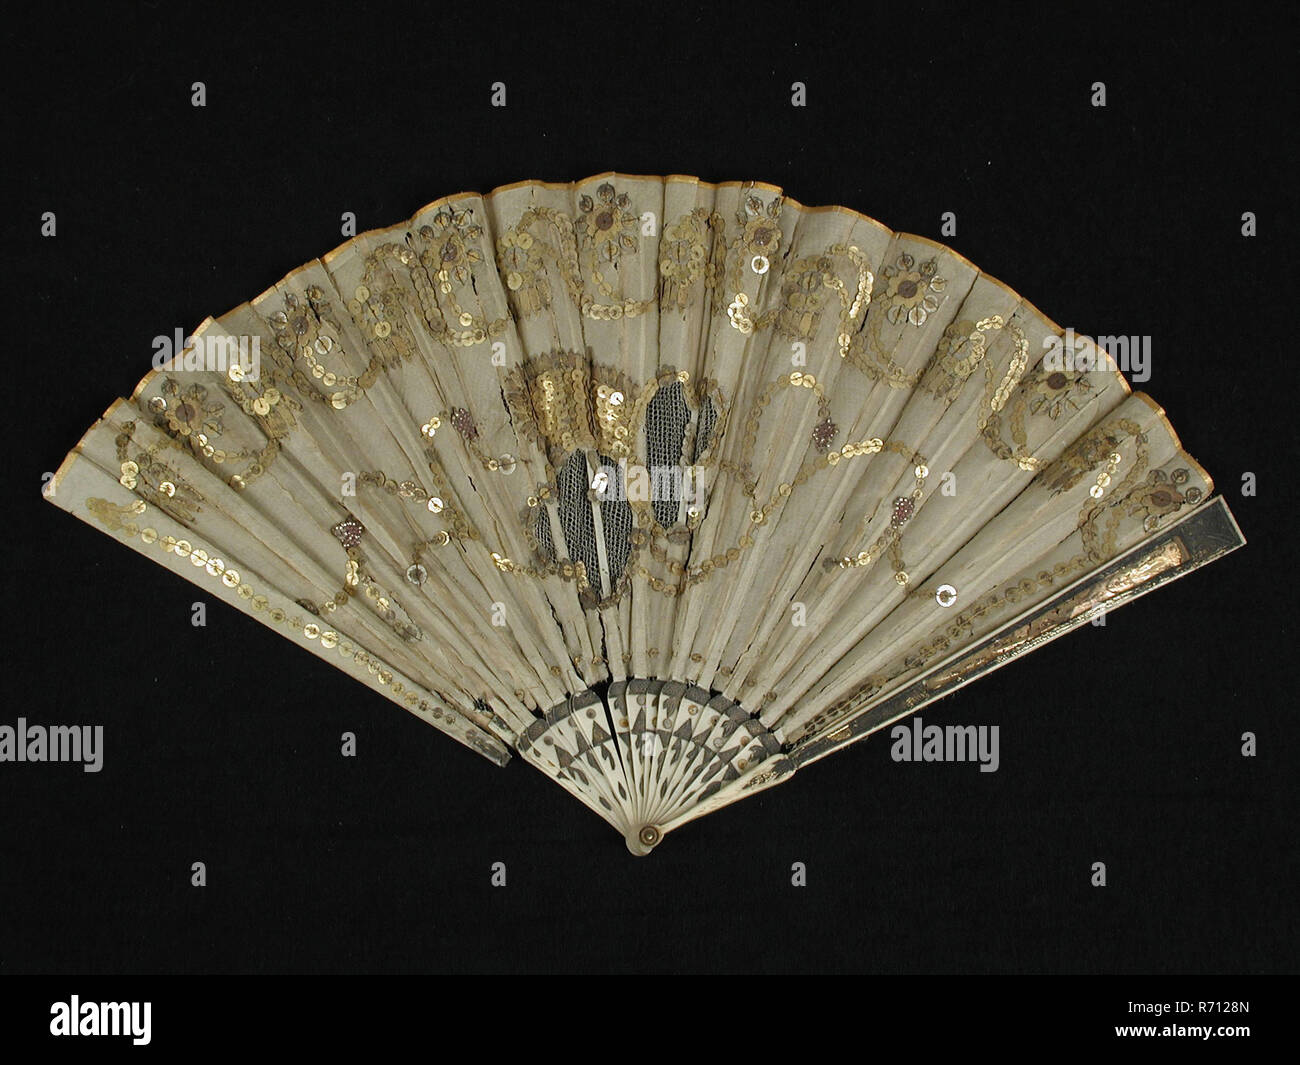 aa75061d76 Folding fan with bone frame with foil, fan blade of cream-colored silk with